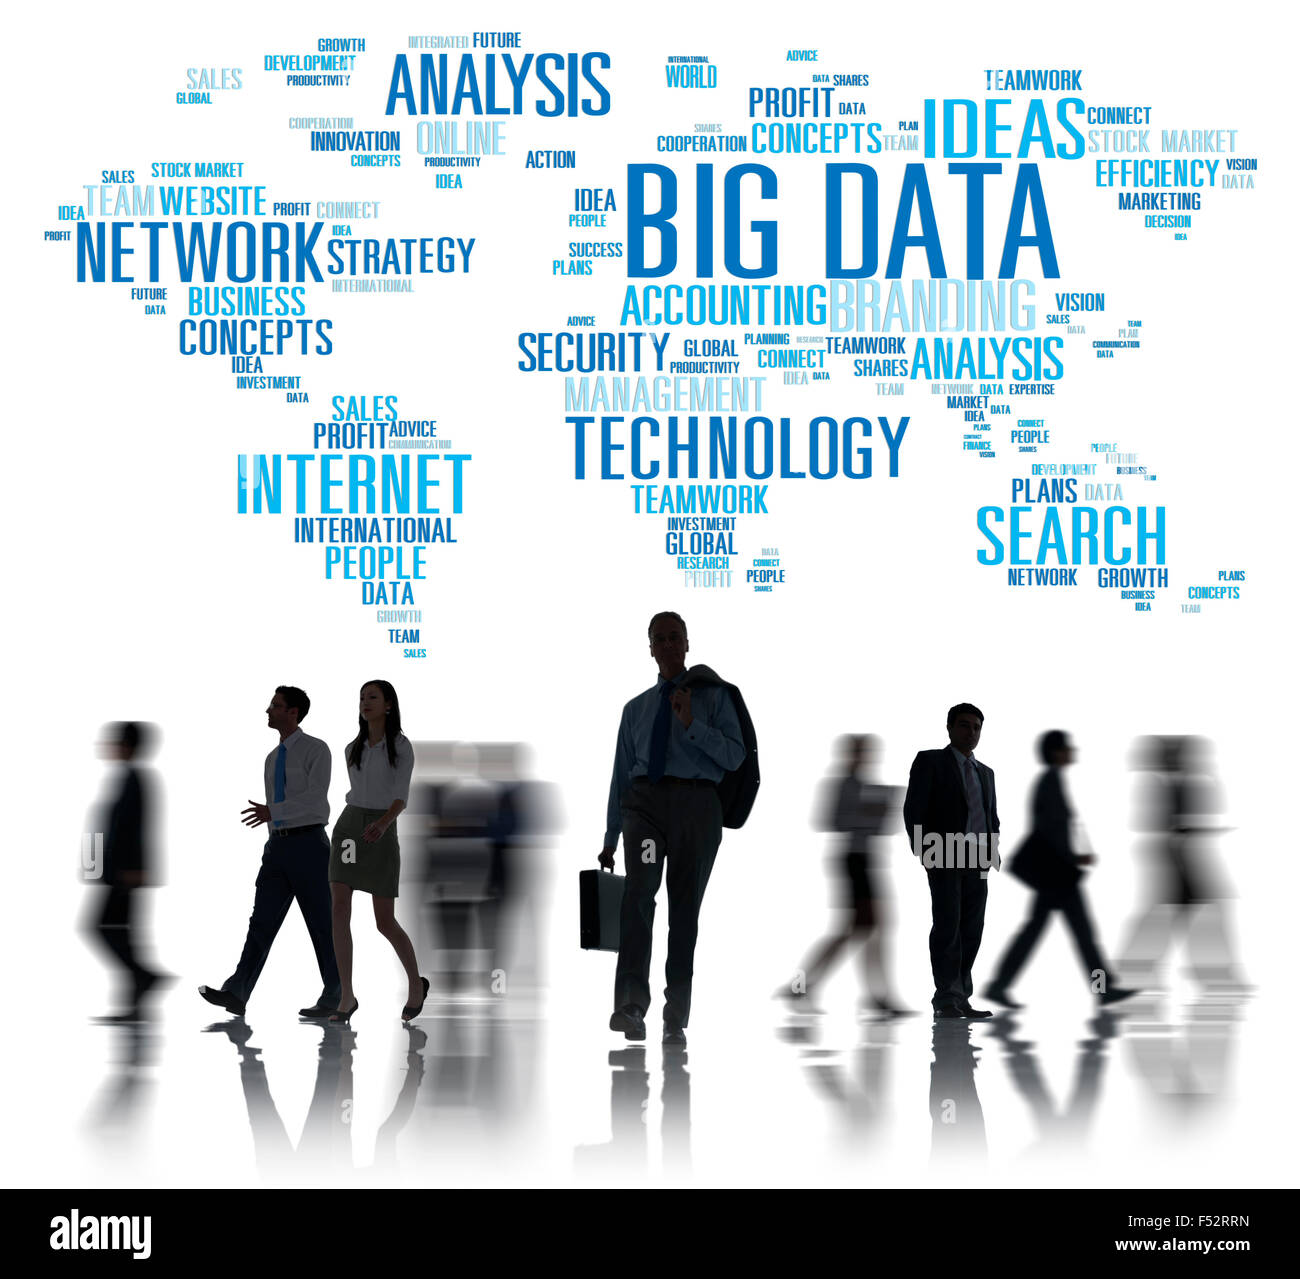 Big data storage information world map concept stock photo 89187721 big data storage information world map concept gumiabroncs Image collections